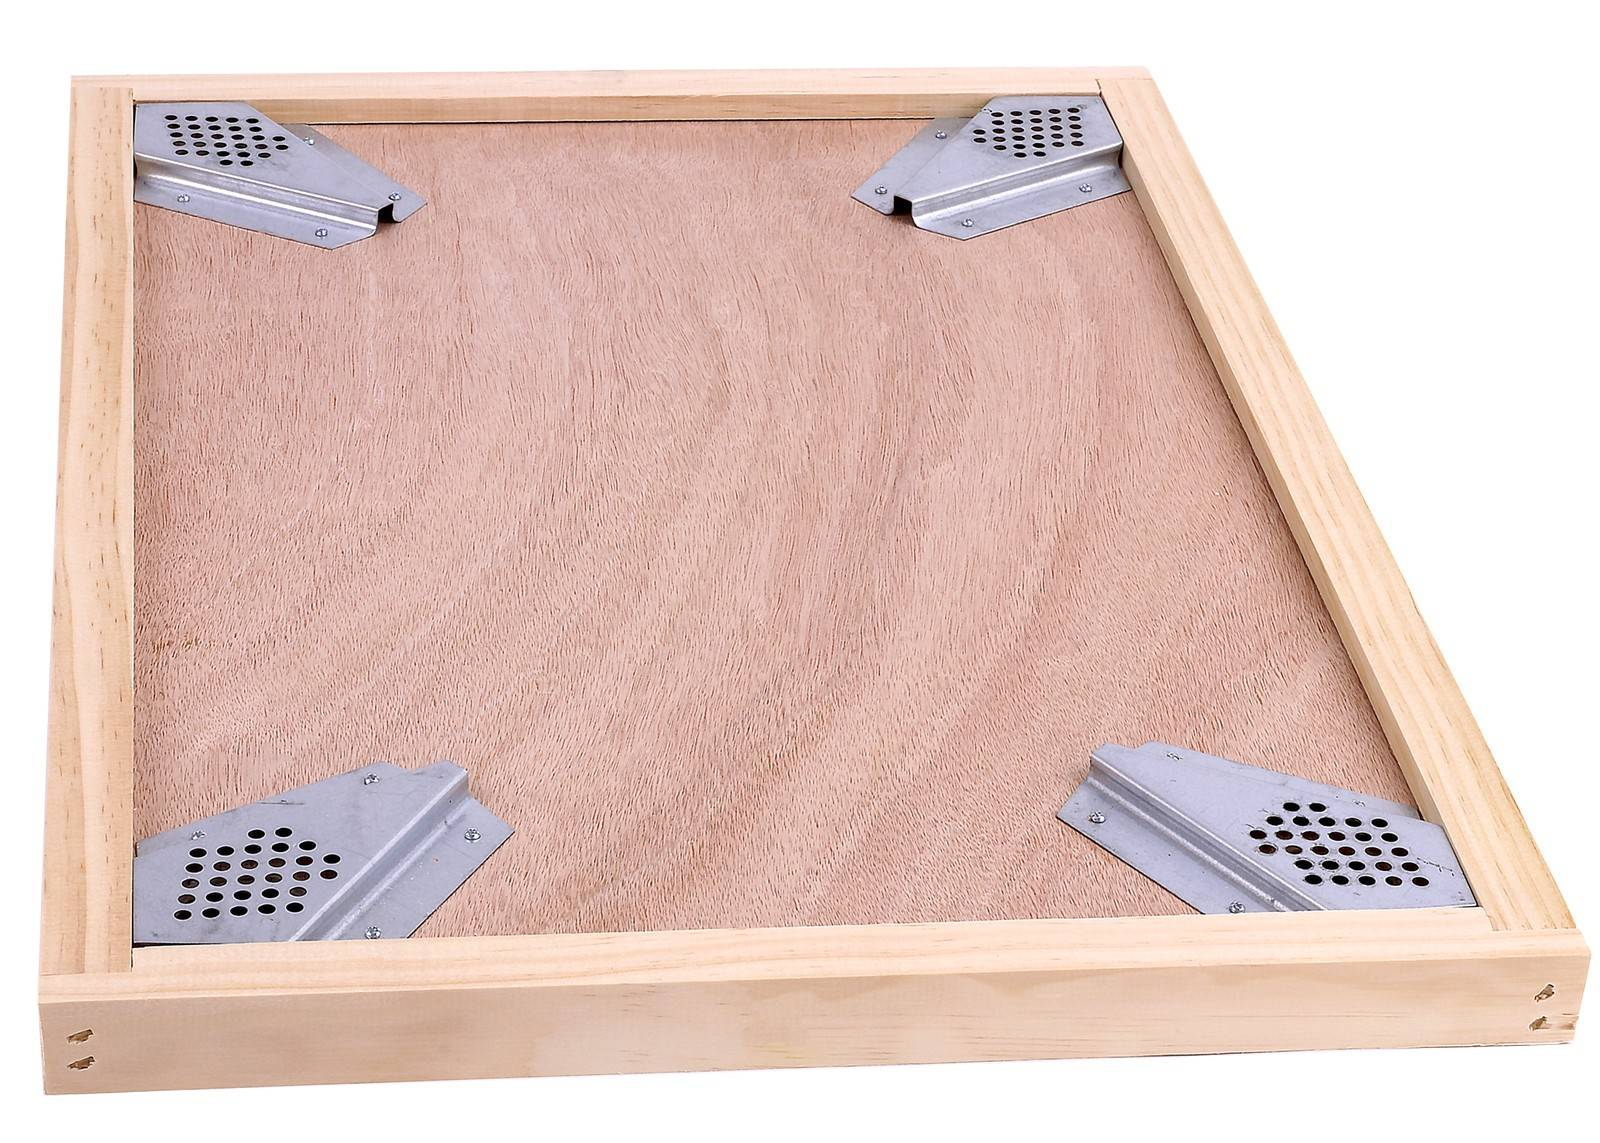 Hive Accessories Escape Board 10 Frame Beekeeping